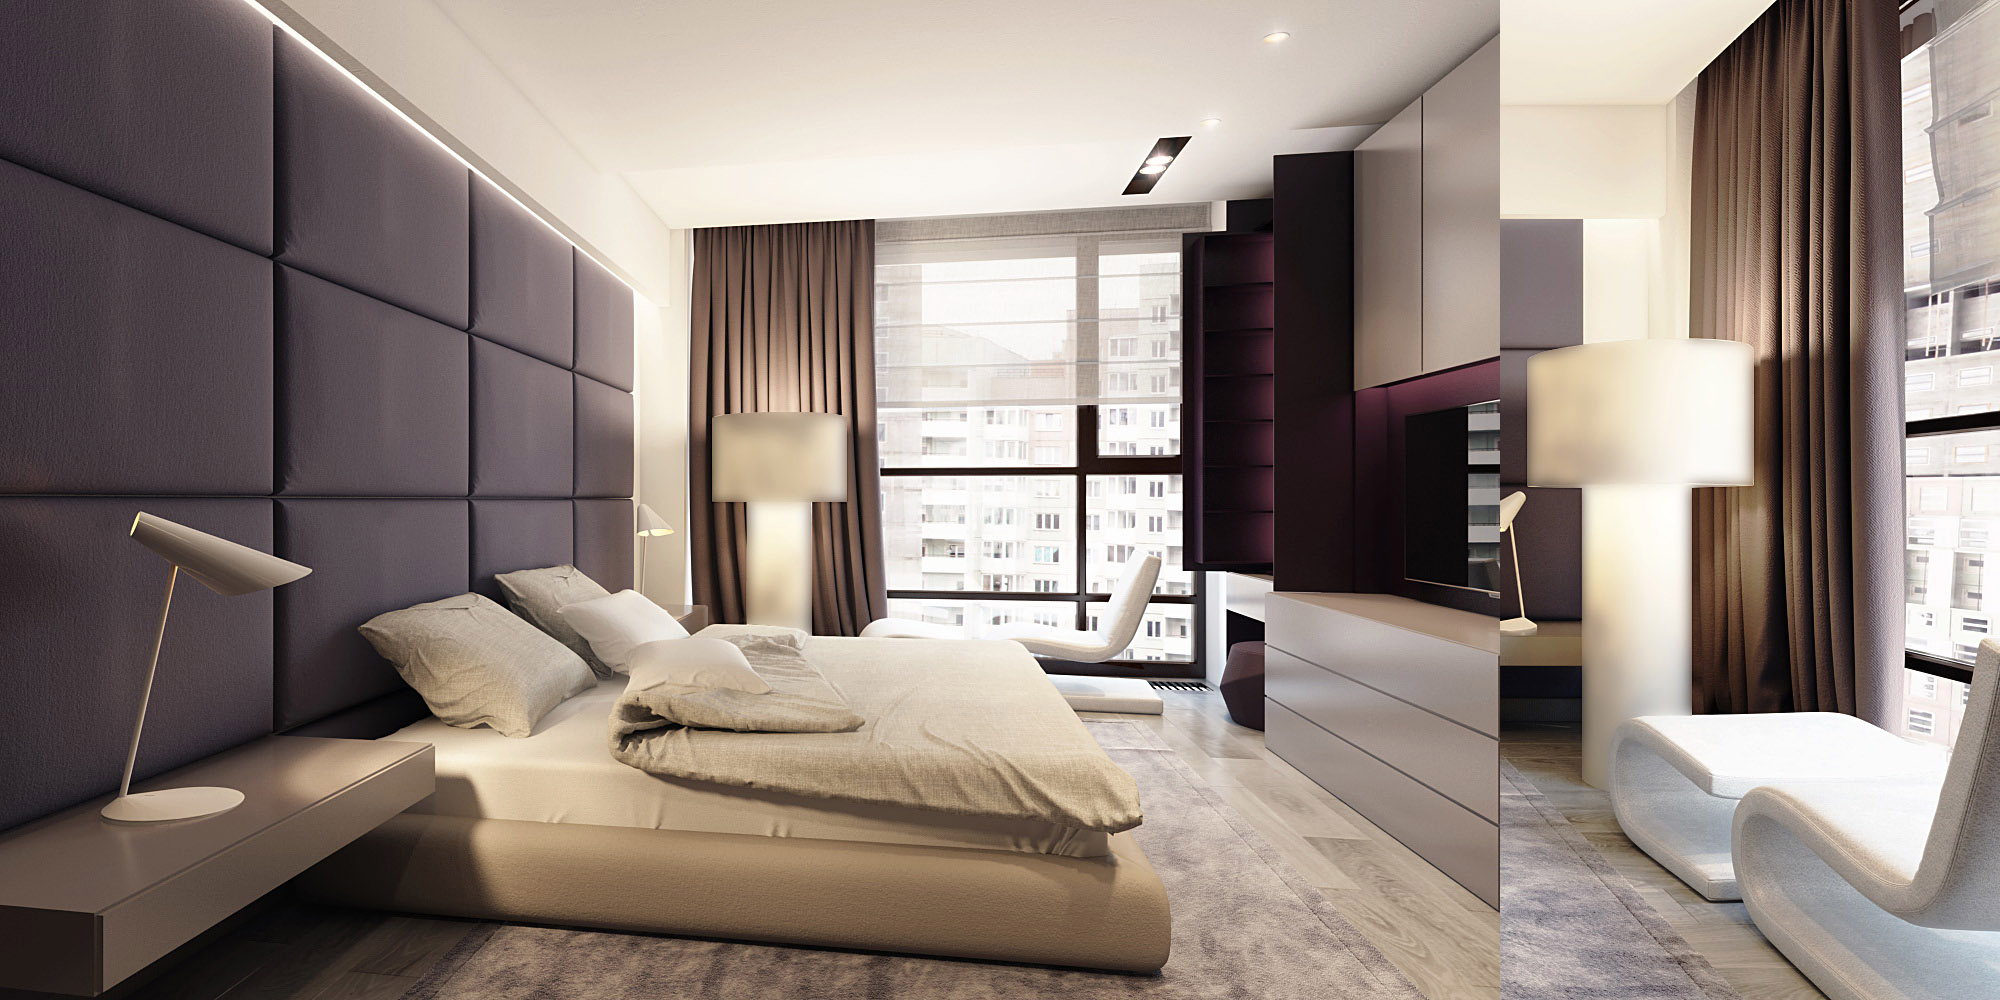 Sophisticated family apartment with rich wood accents - Bedroom designers ...